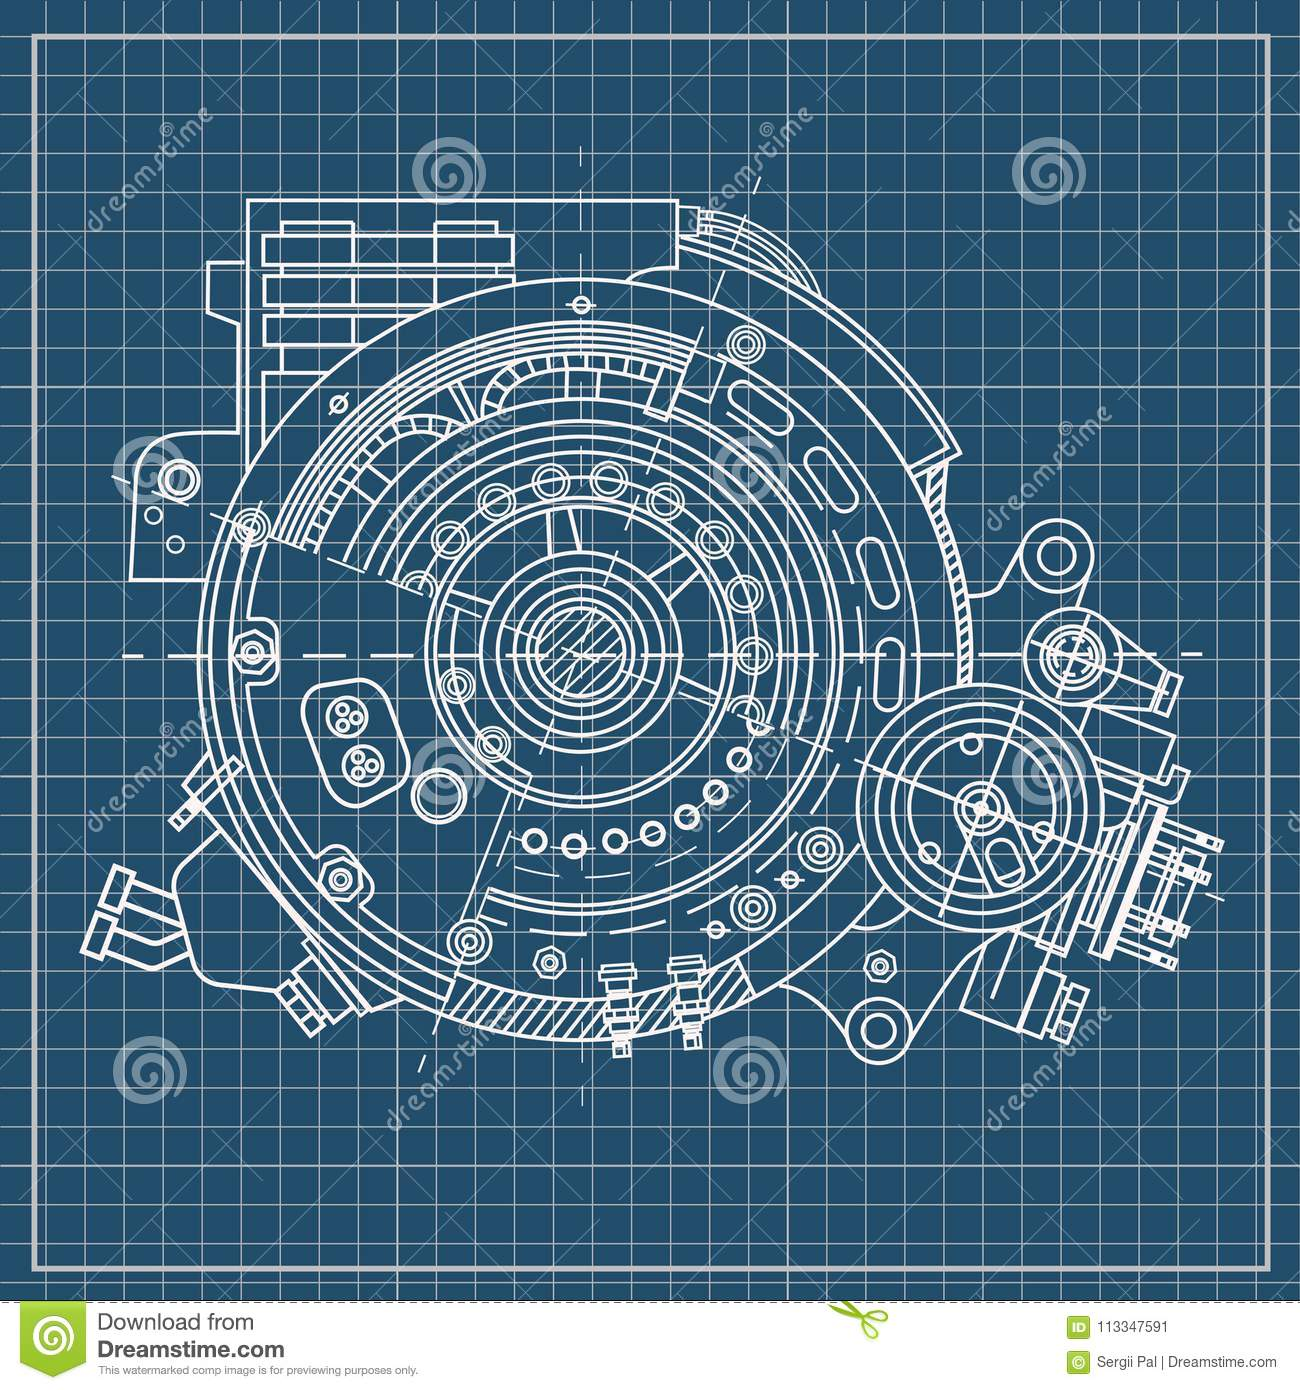 Drawing The Electric Motor Section Representing The Internal ...